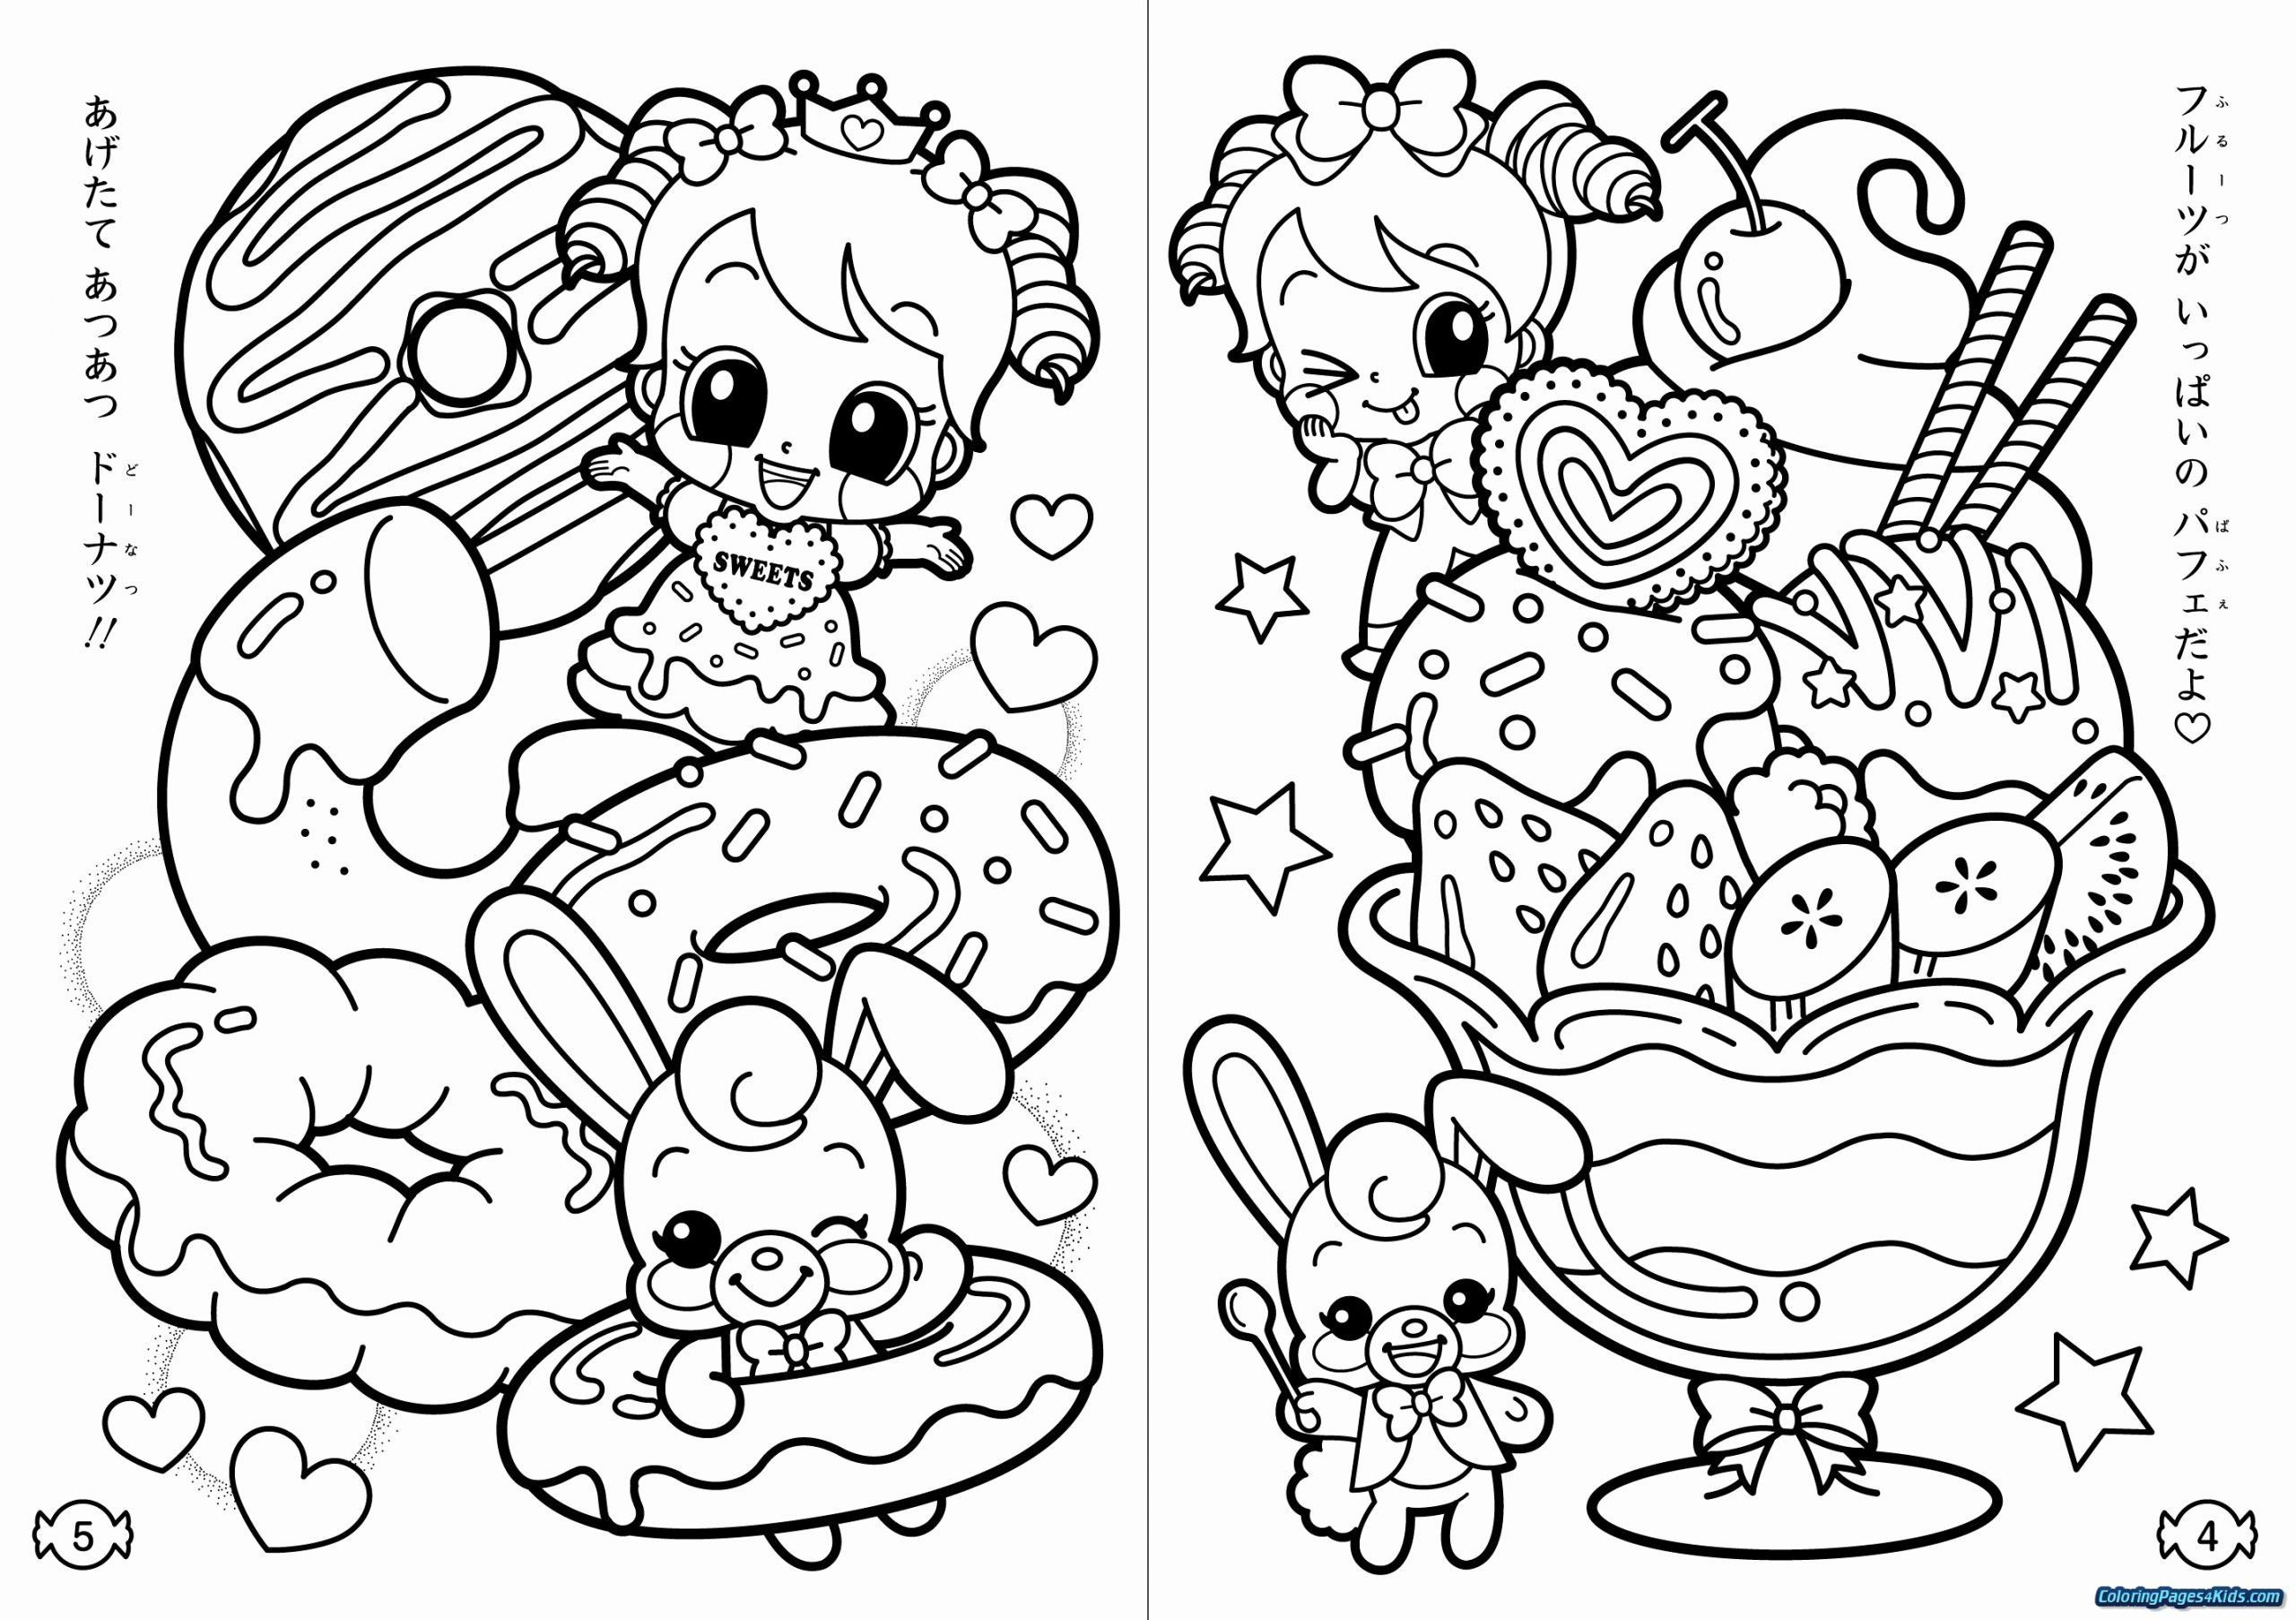 Coloring Pages Kawaii Animals Inspirational Kawaii Lineart Theivrgroup 2019 Unicorn Coloring Pages Cute Coloring Pages Disney Coloring Pages